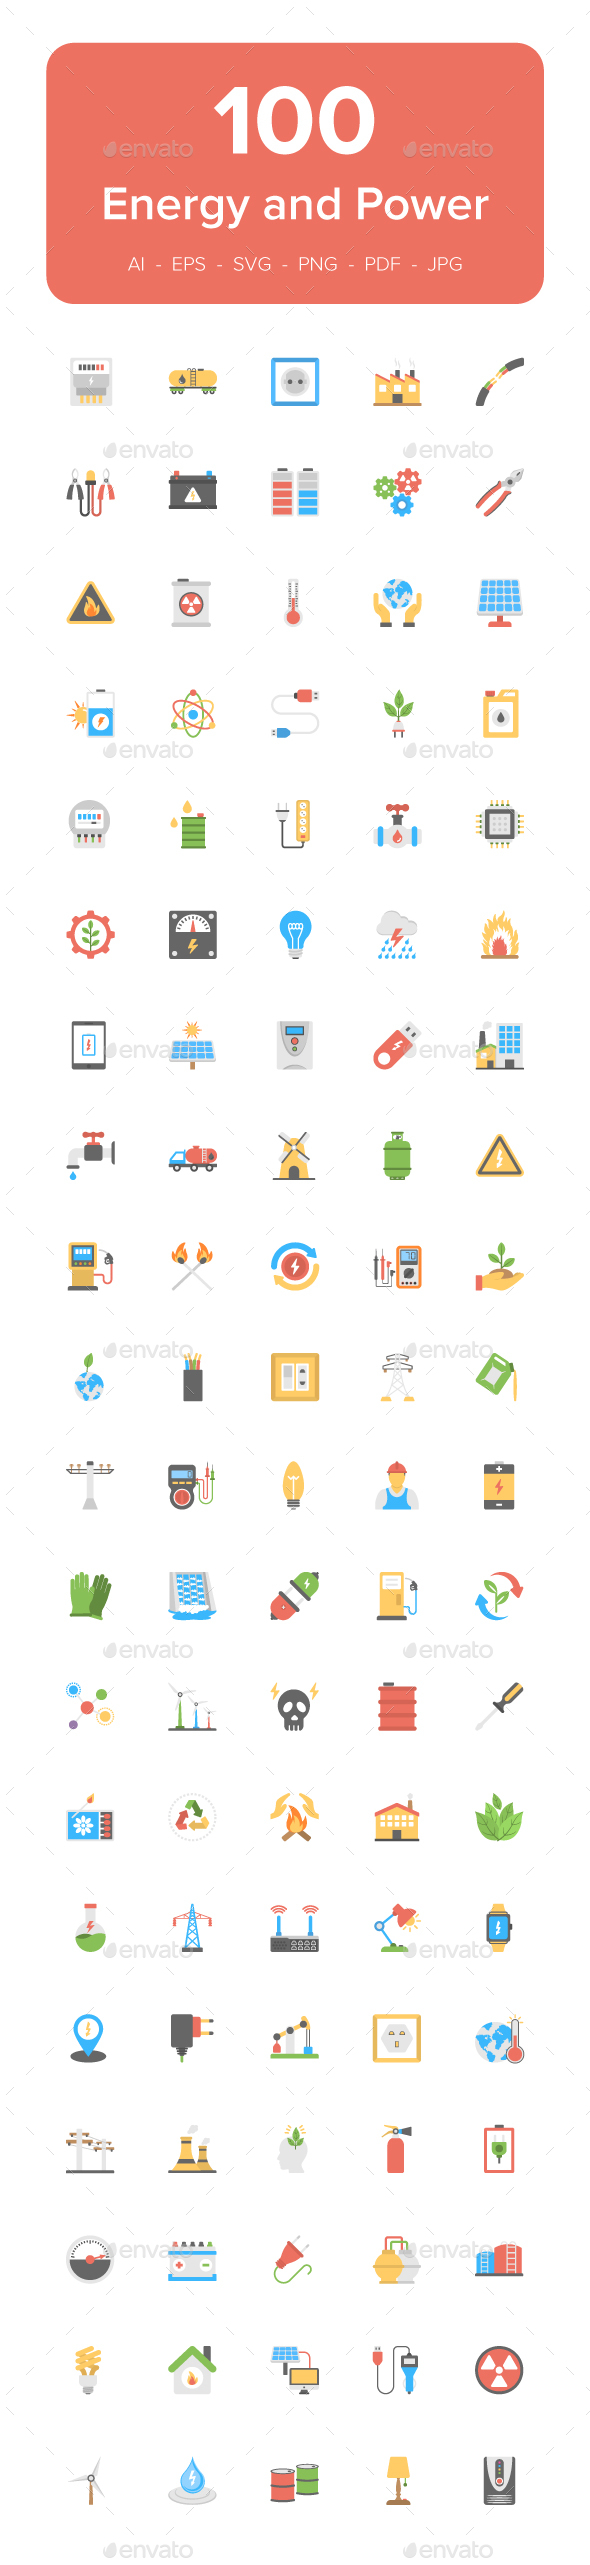 GraphicRiver 100 Energy and Power Flat Icons 21146764